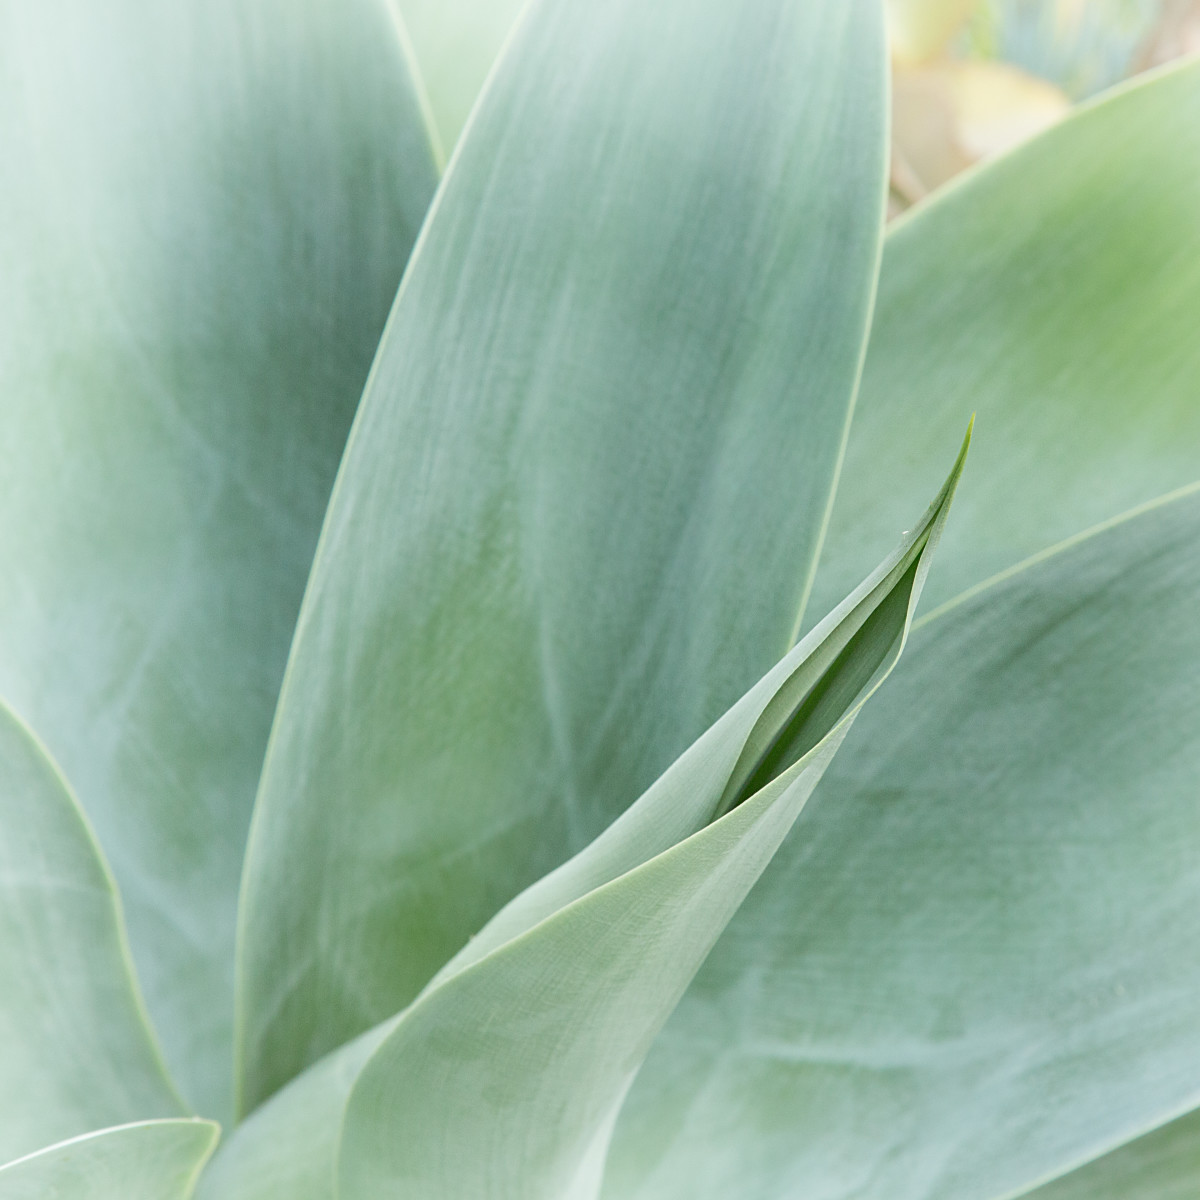 caring-for-indoor-plants-when-warmer-weather-on-the-way